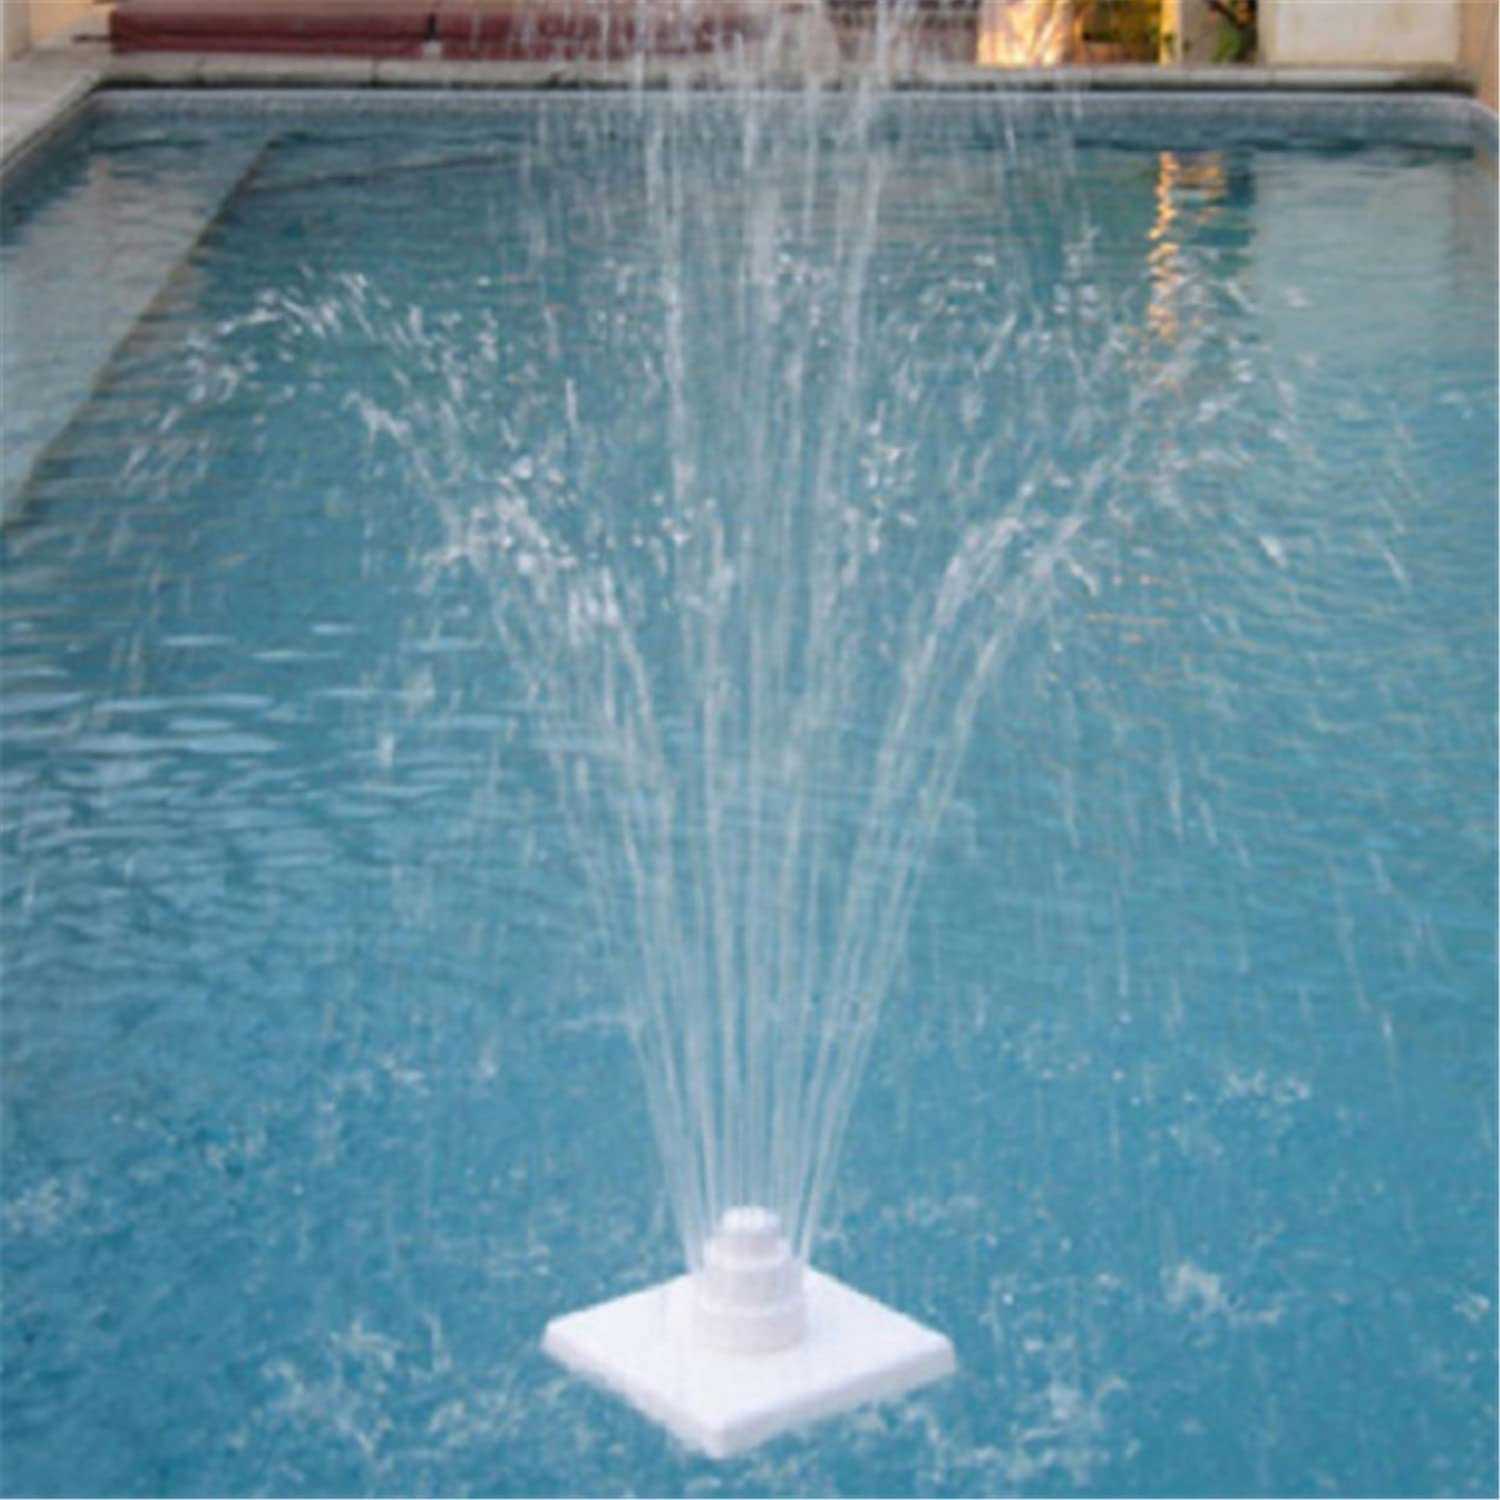 ZDYLM-Y Swimming Pool Sprinkler discount Fountain Triple Outdoor Shipping included Tier Fl